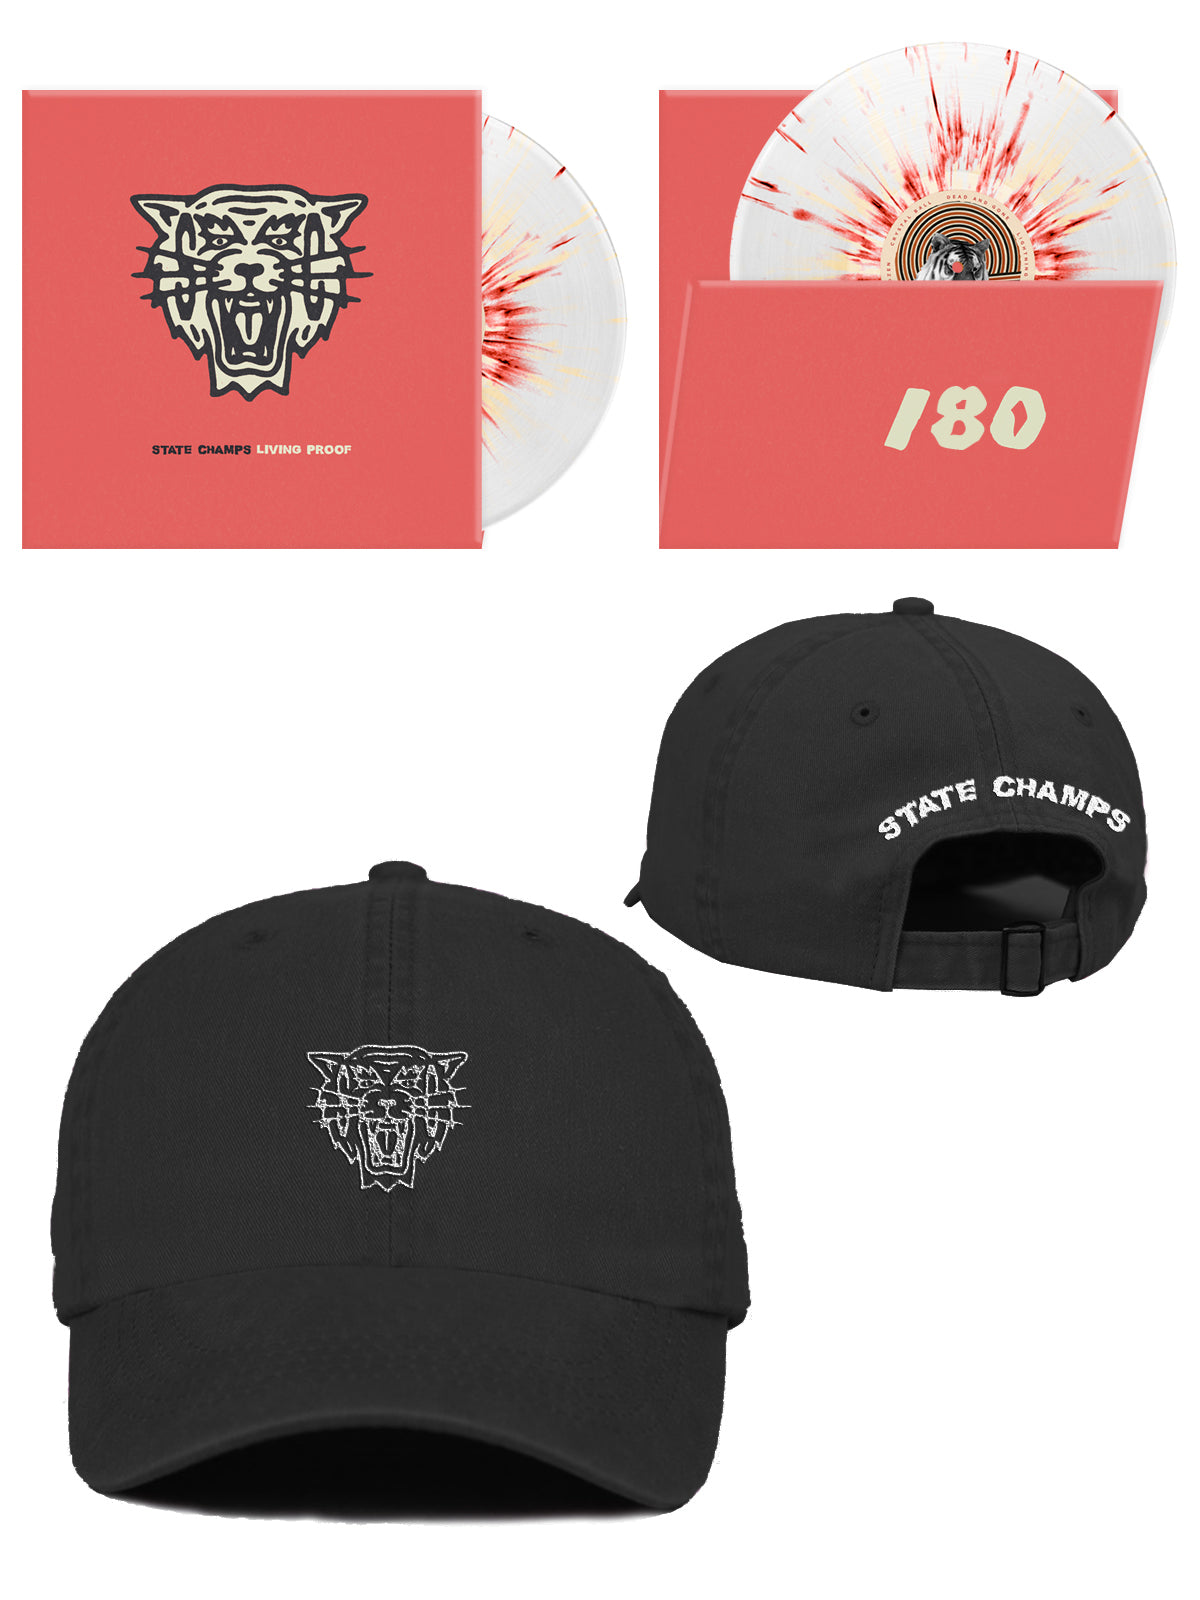 State Champs - Living Proof Bundle #6 - Merch Limited